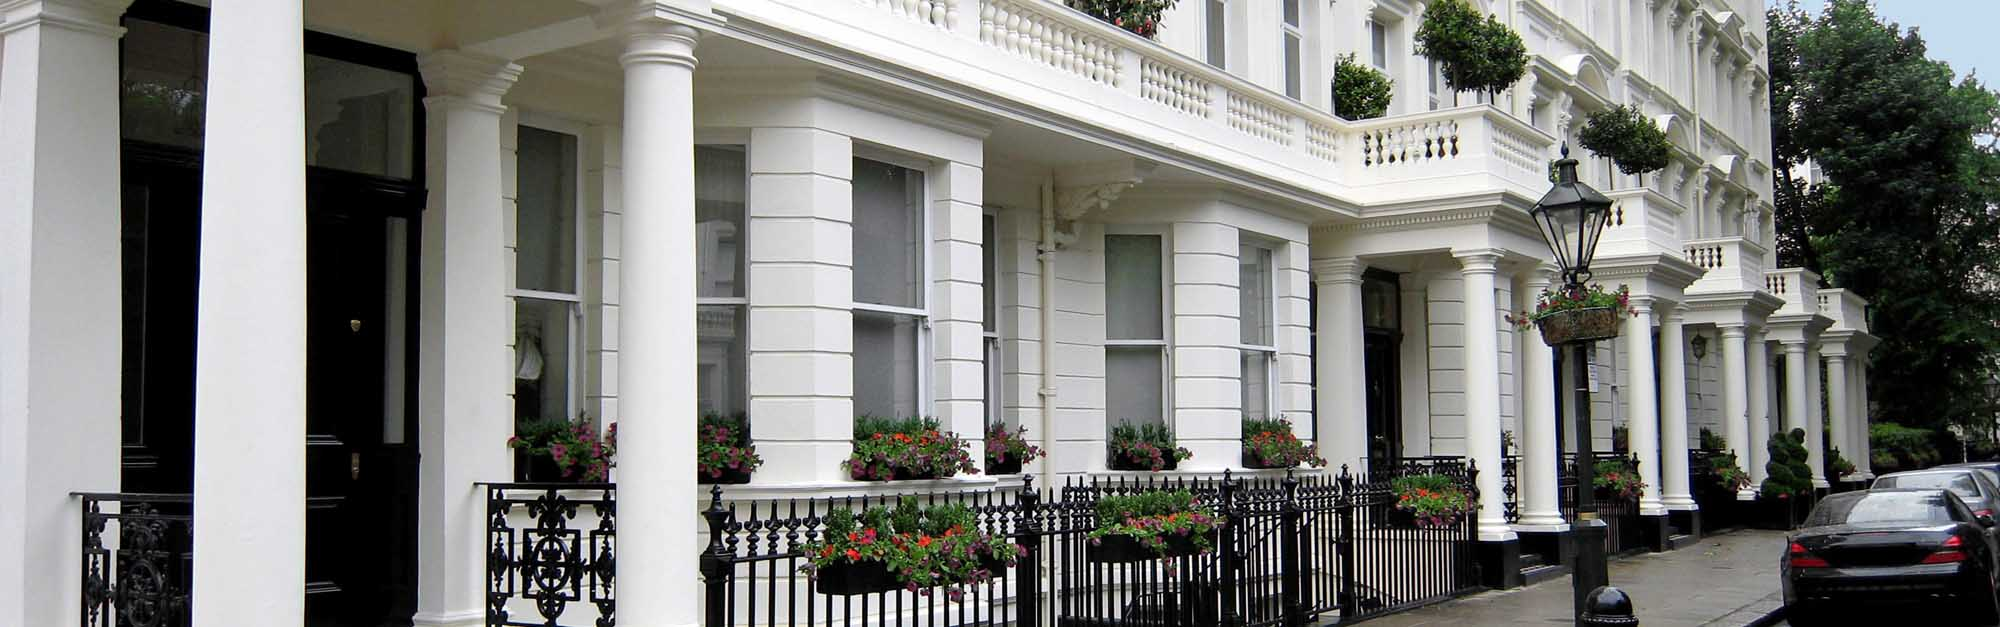 pelham party wall surveyors in london